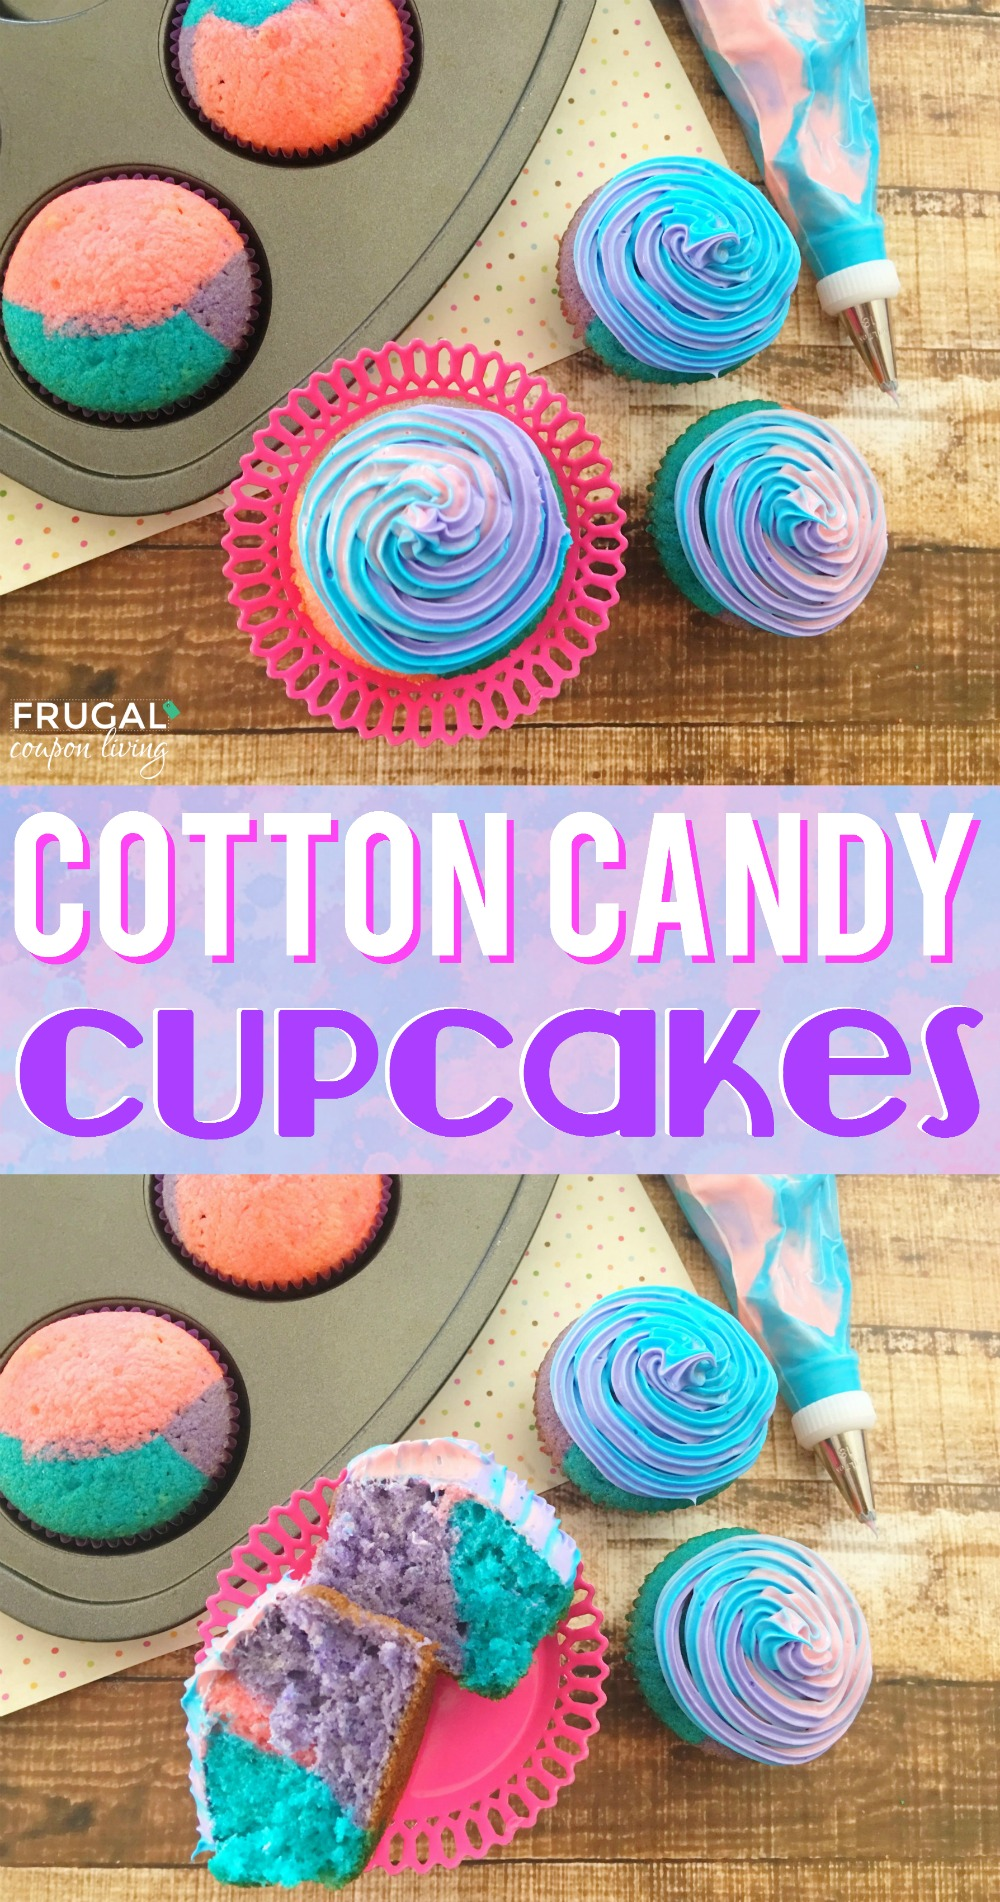 cotton-candy-cupcakes-frugal-coupon-living